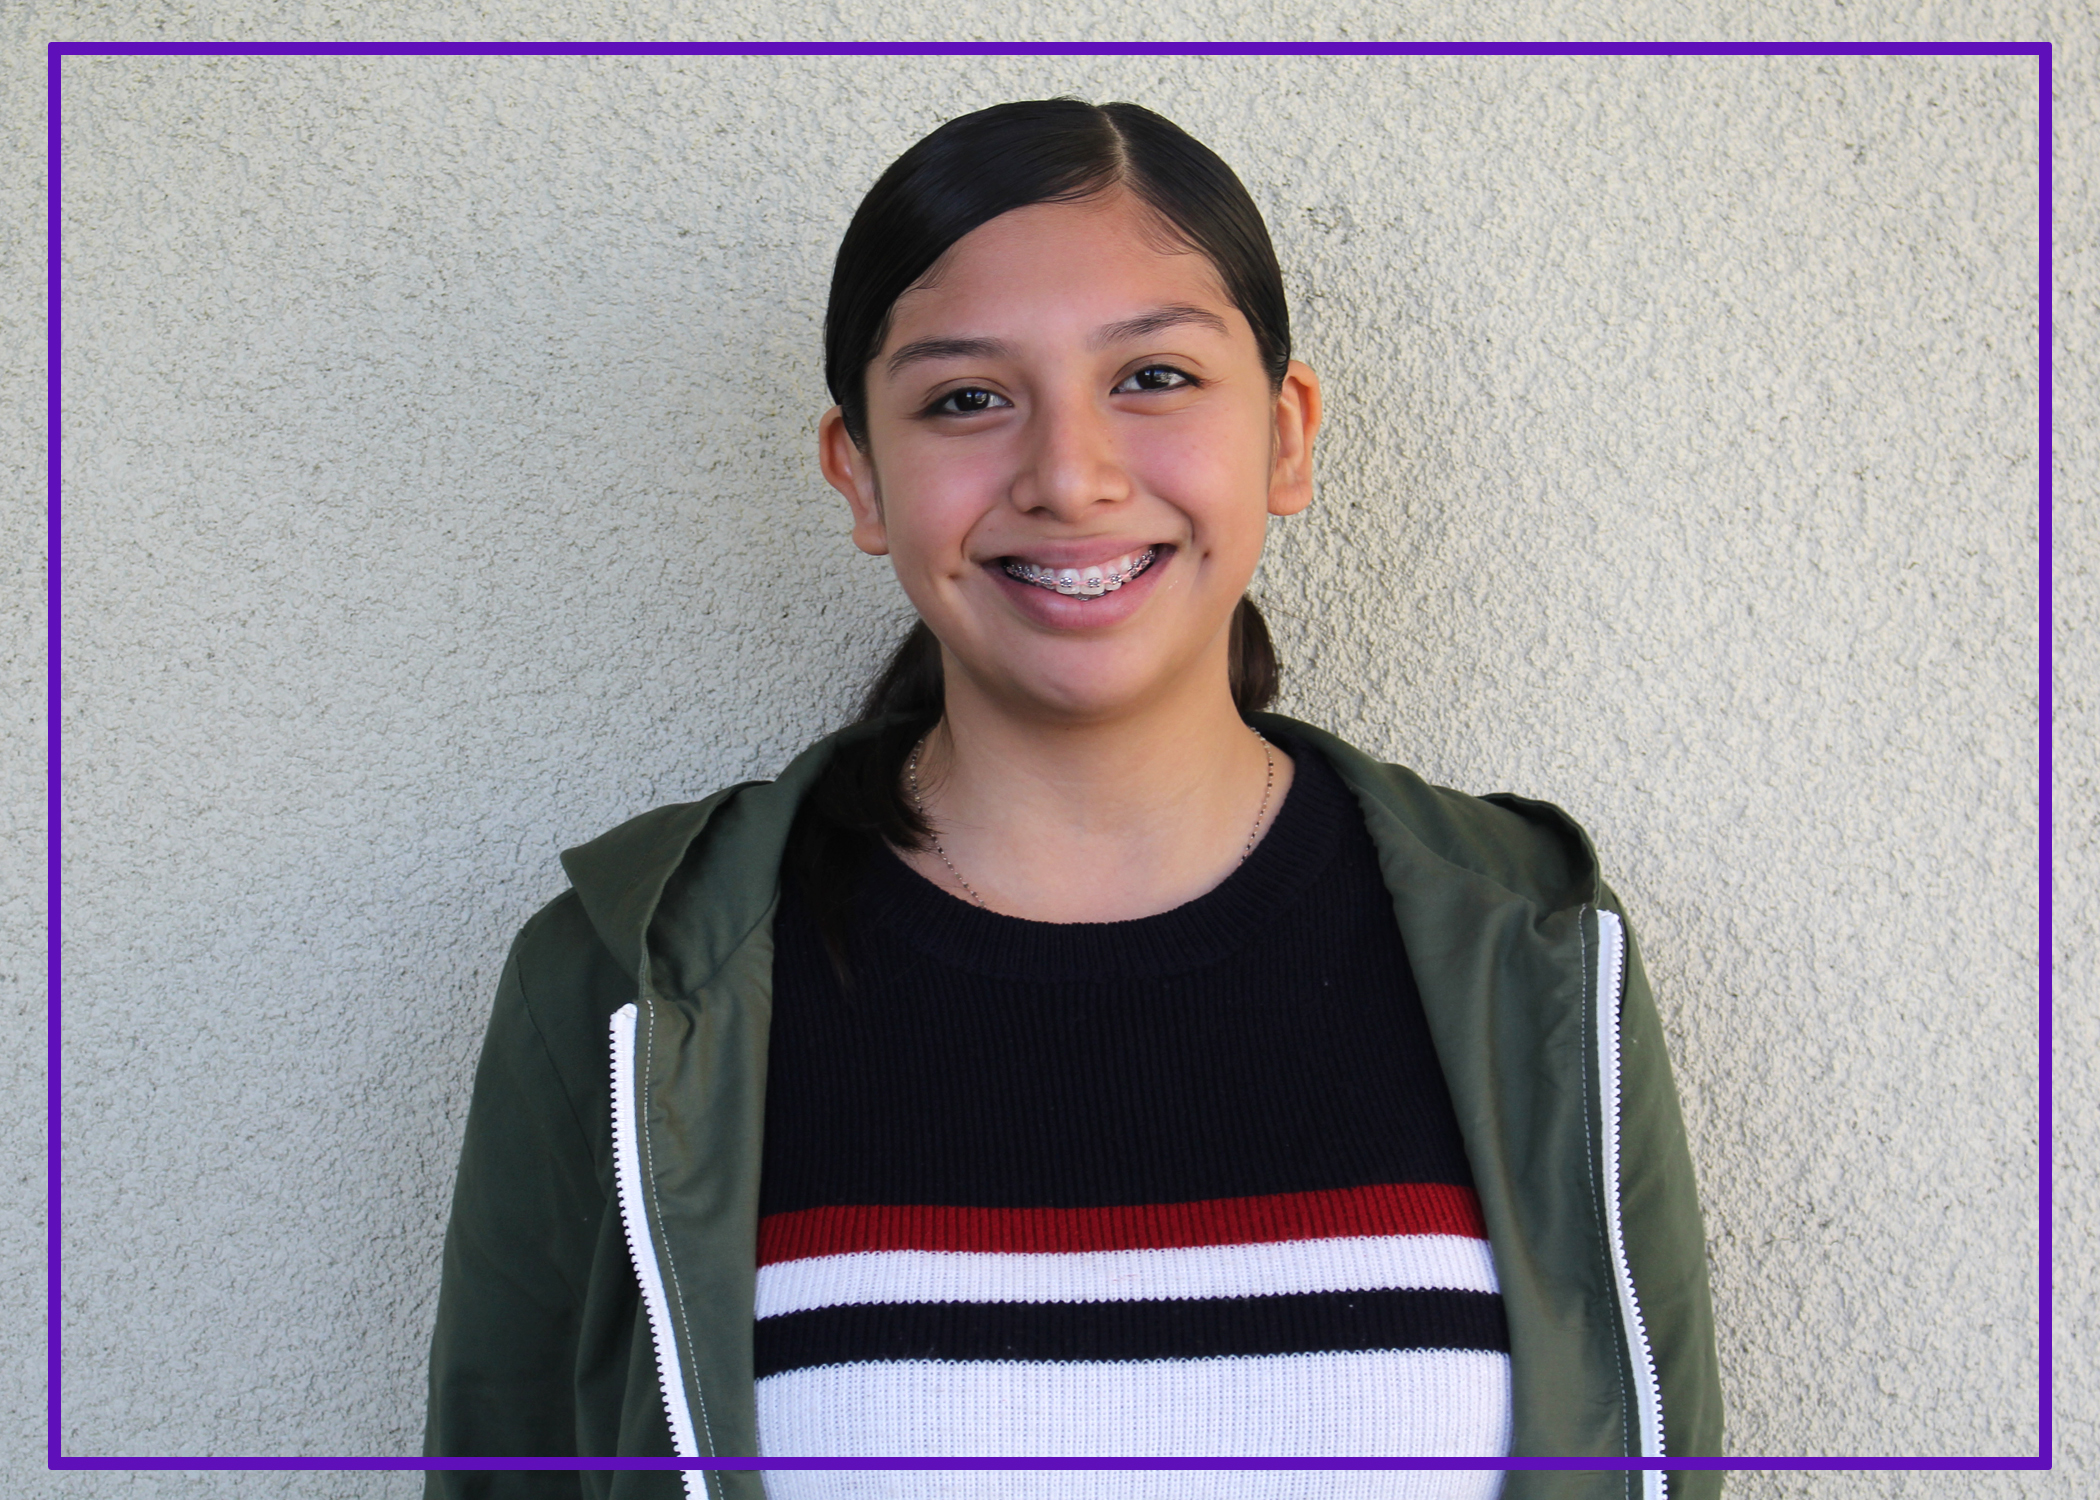 Dulce - I am apart of R.O.Y.A.L.S because I like to make a difference in our community and making the survivors feel understood and safe. Being part of R.O.Y.A.L.S is important to me because it is a way to show who I am and how I want our community to change.